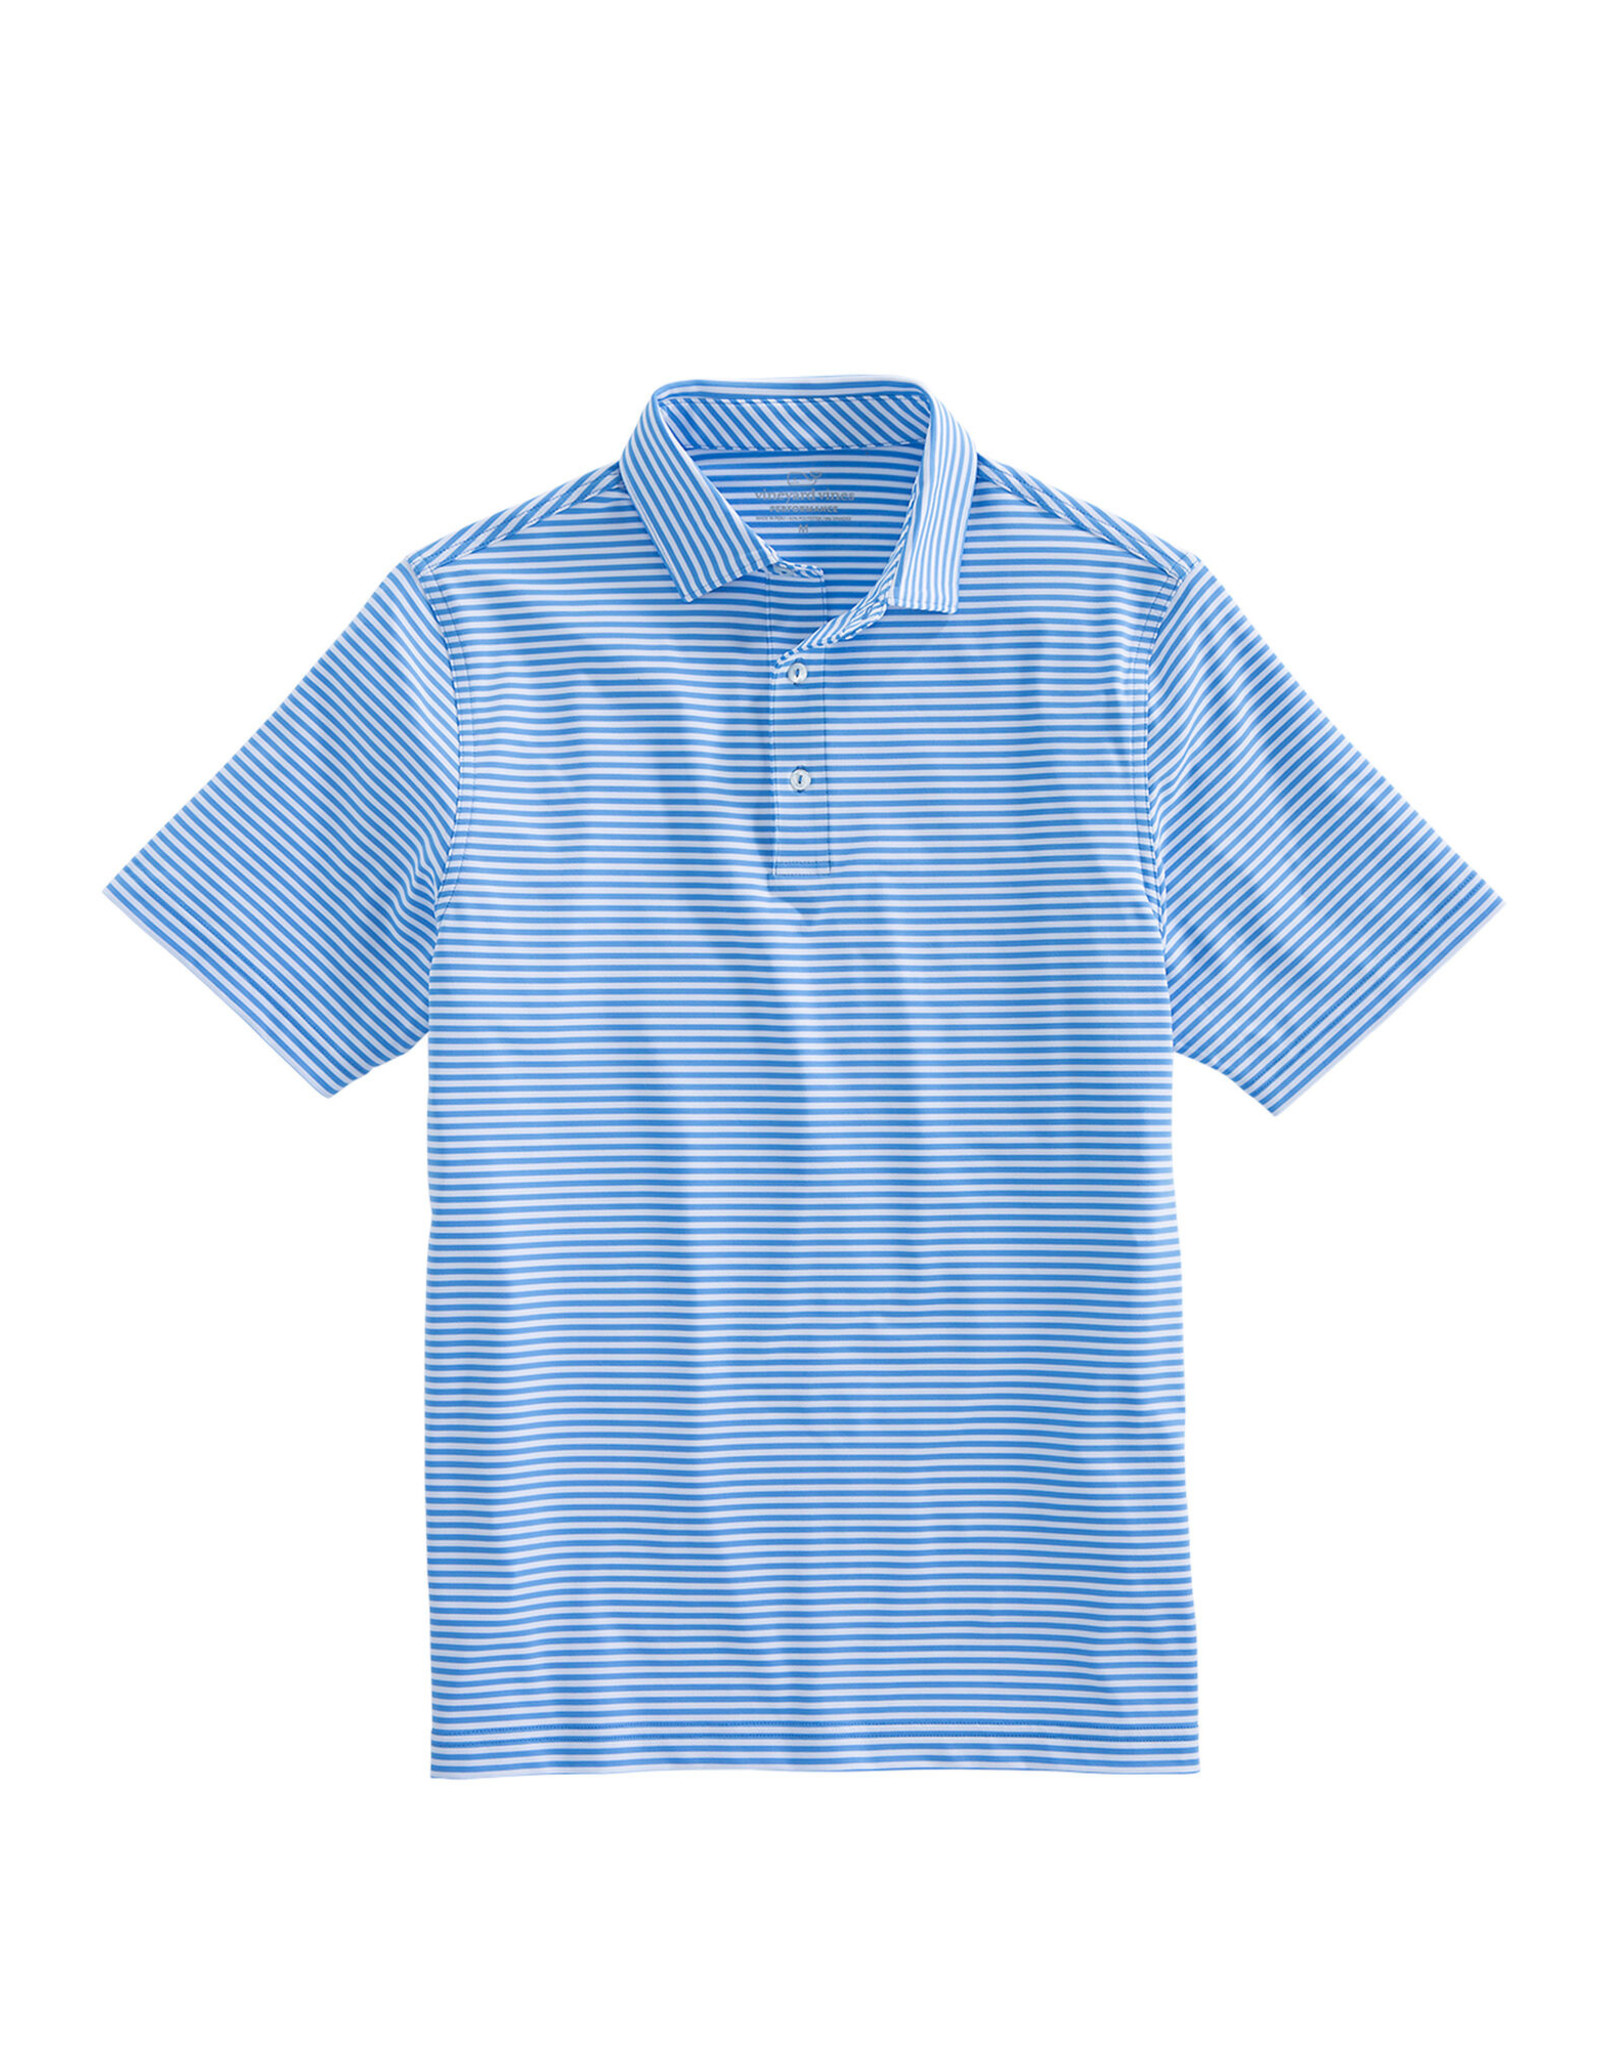 Vineyard Vines Winstead Snkty Polo